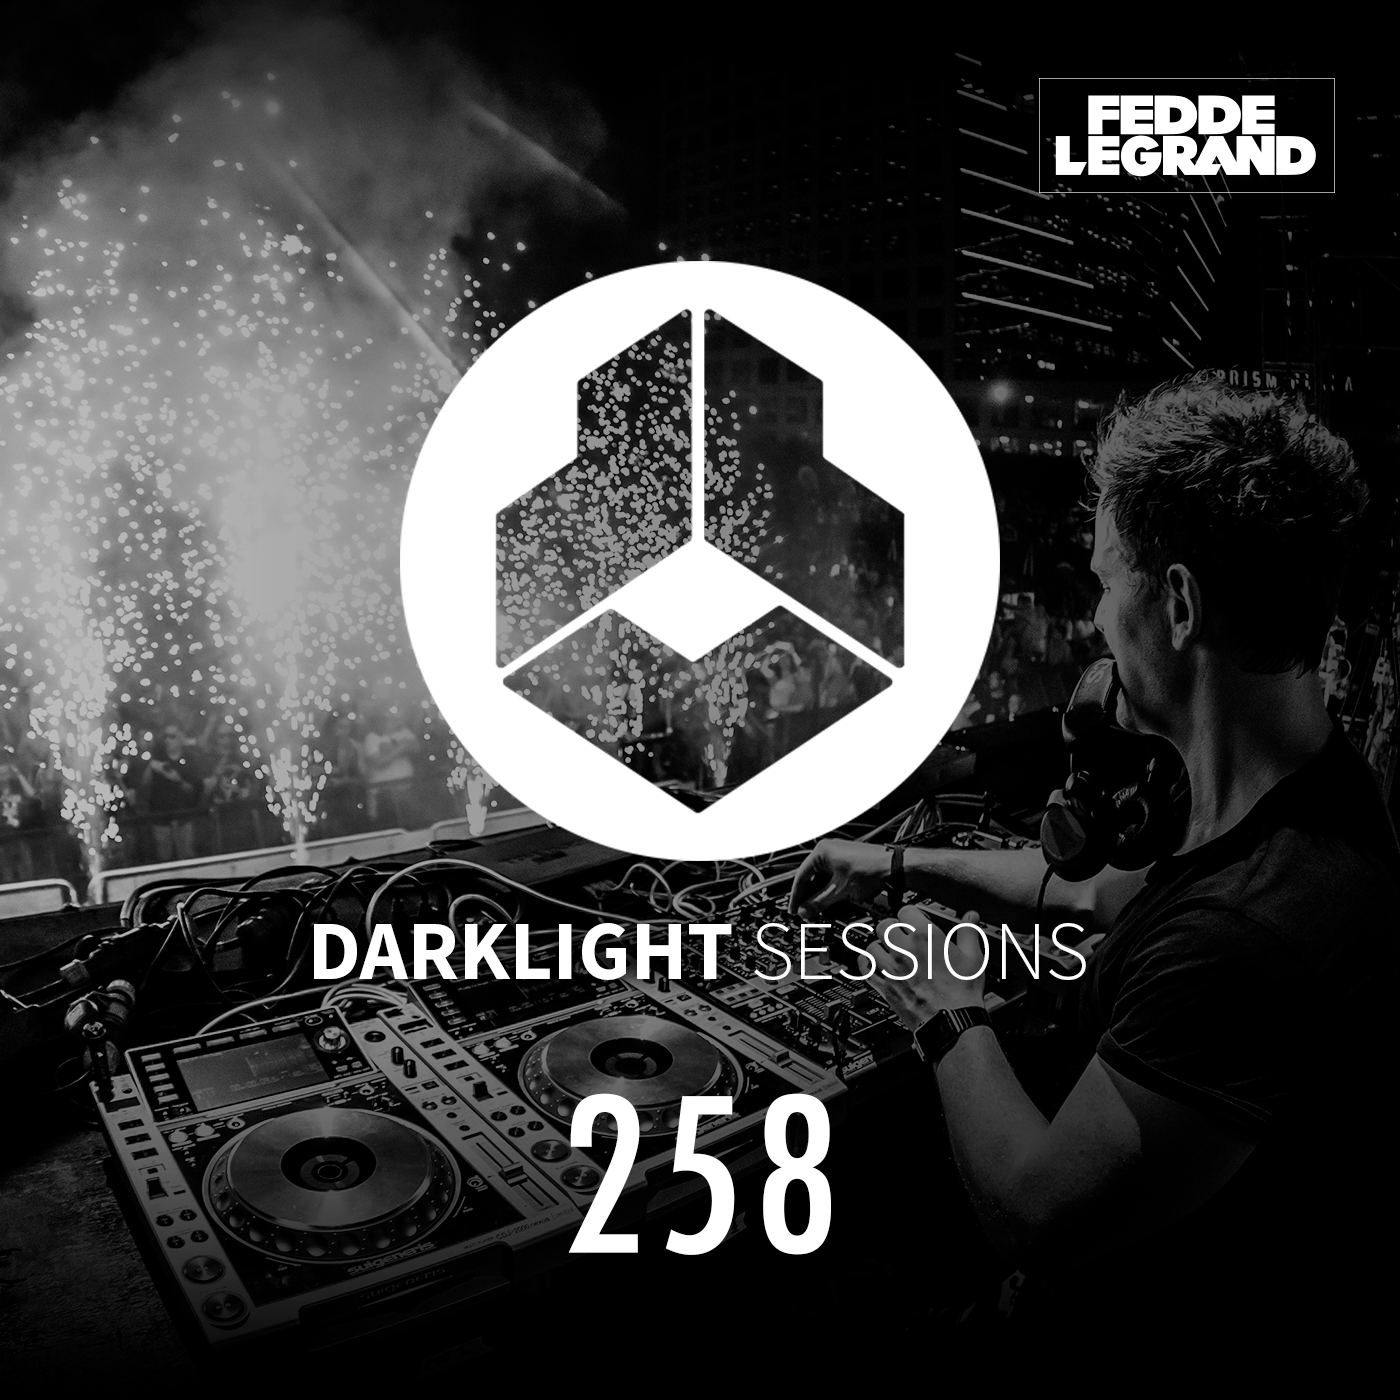 Darklight Sessions 258